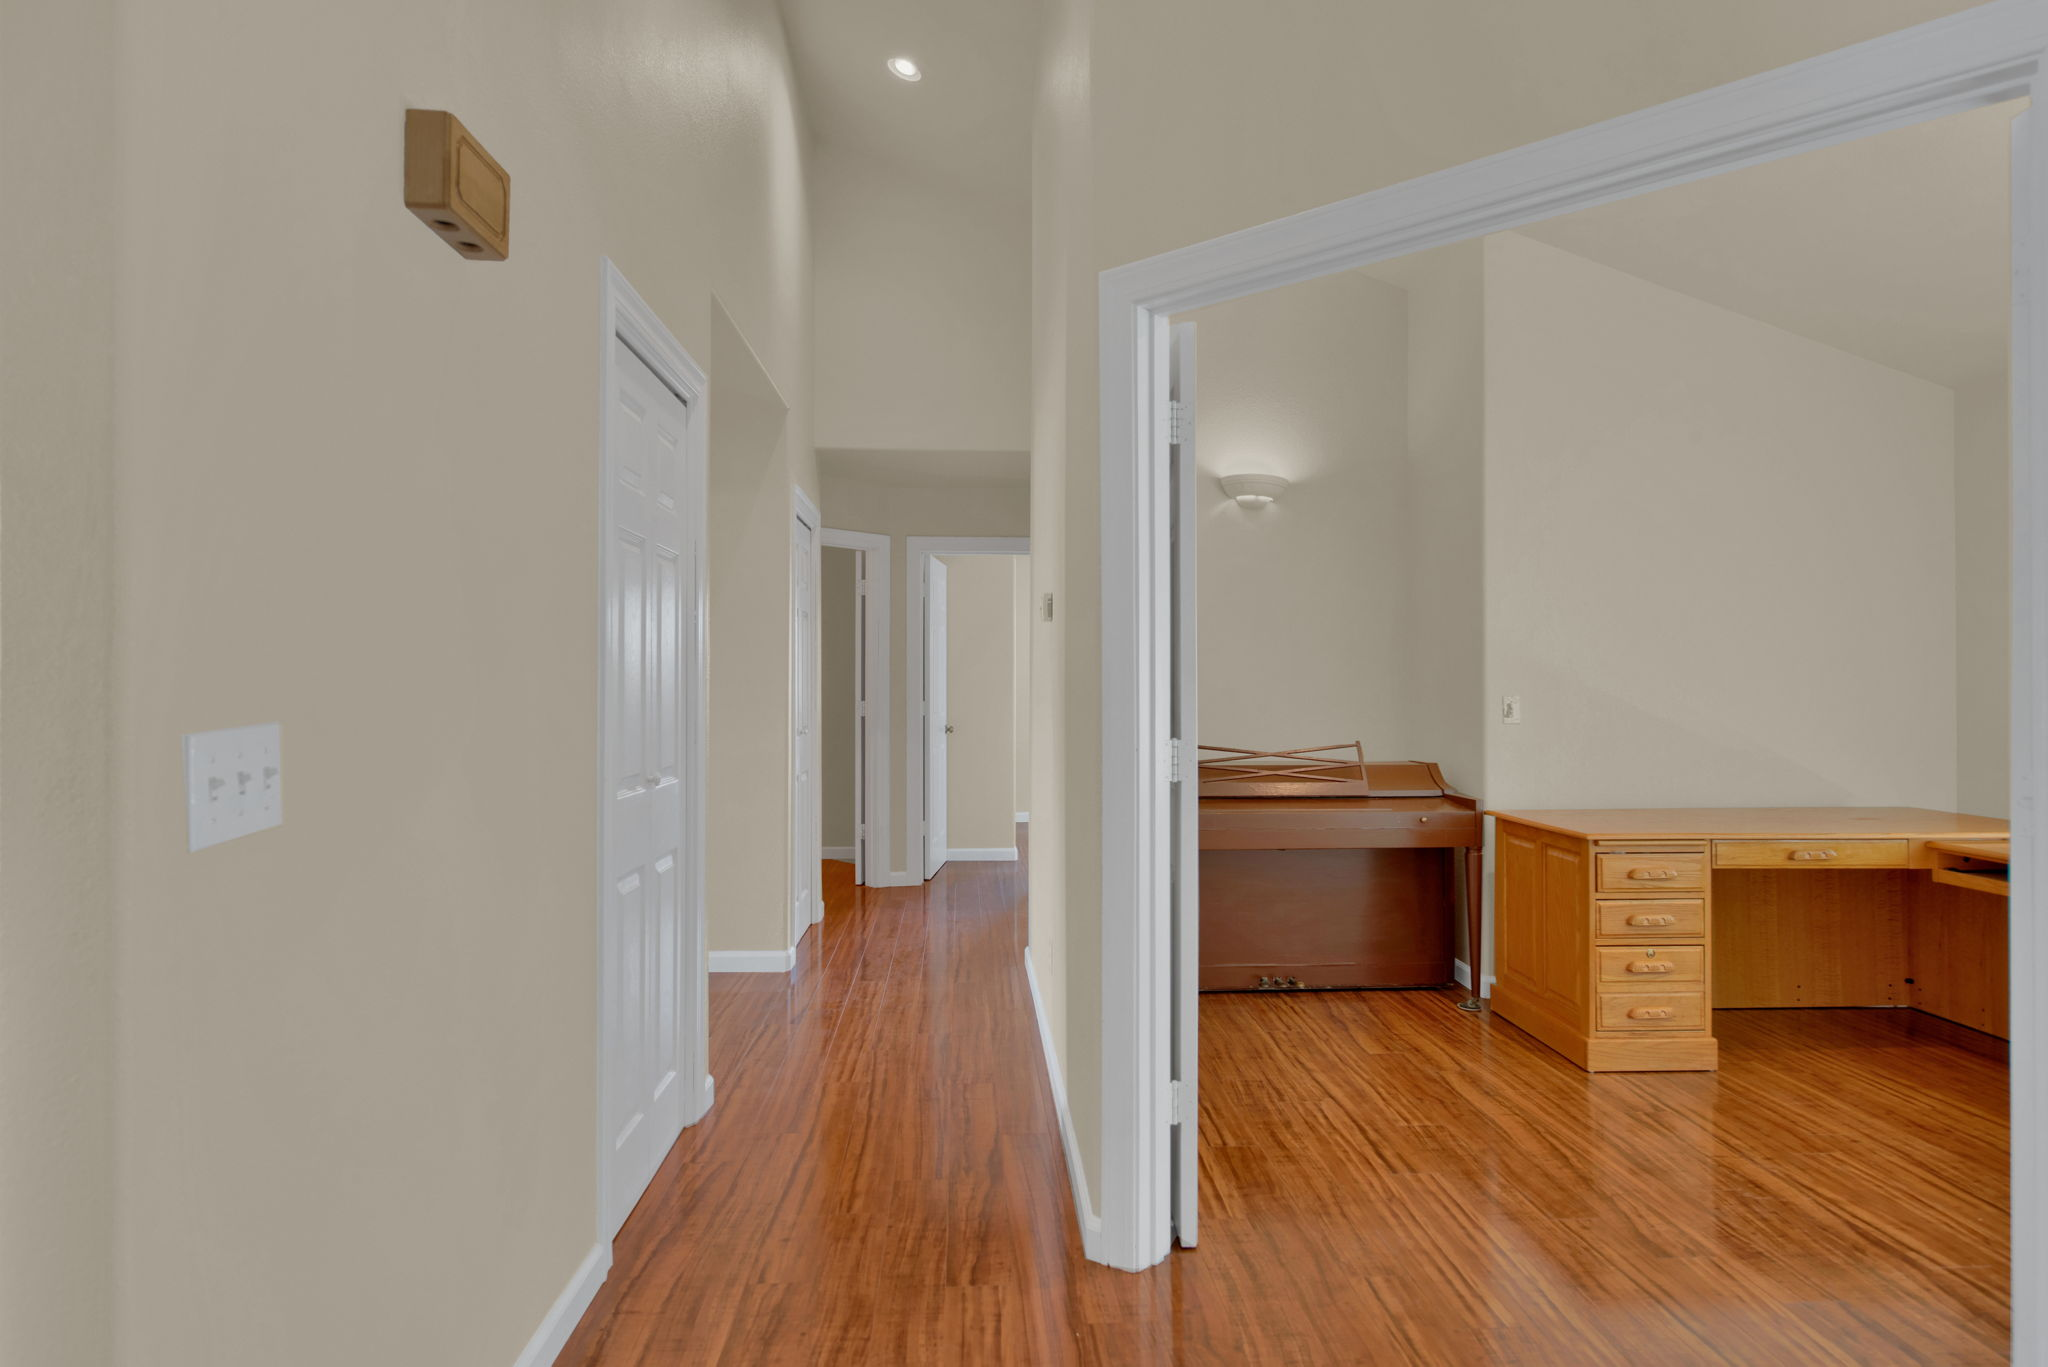 Grand Entry to Bedrooms